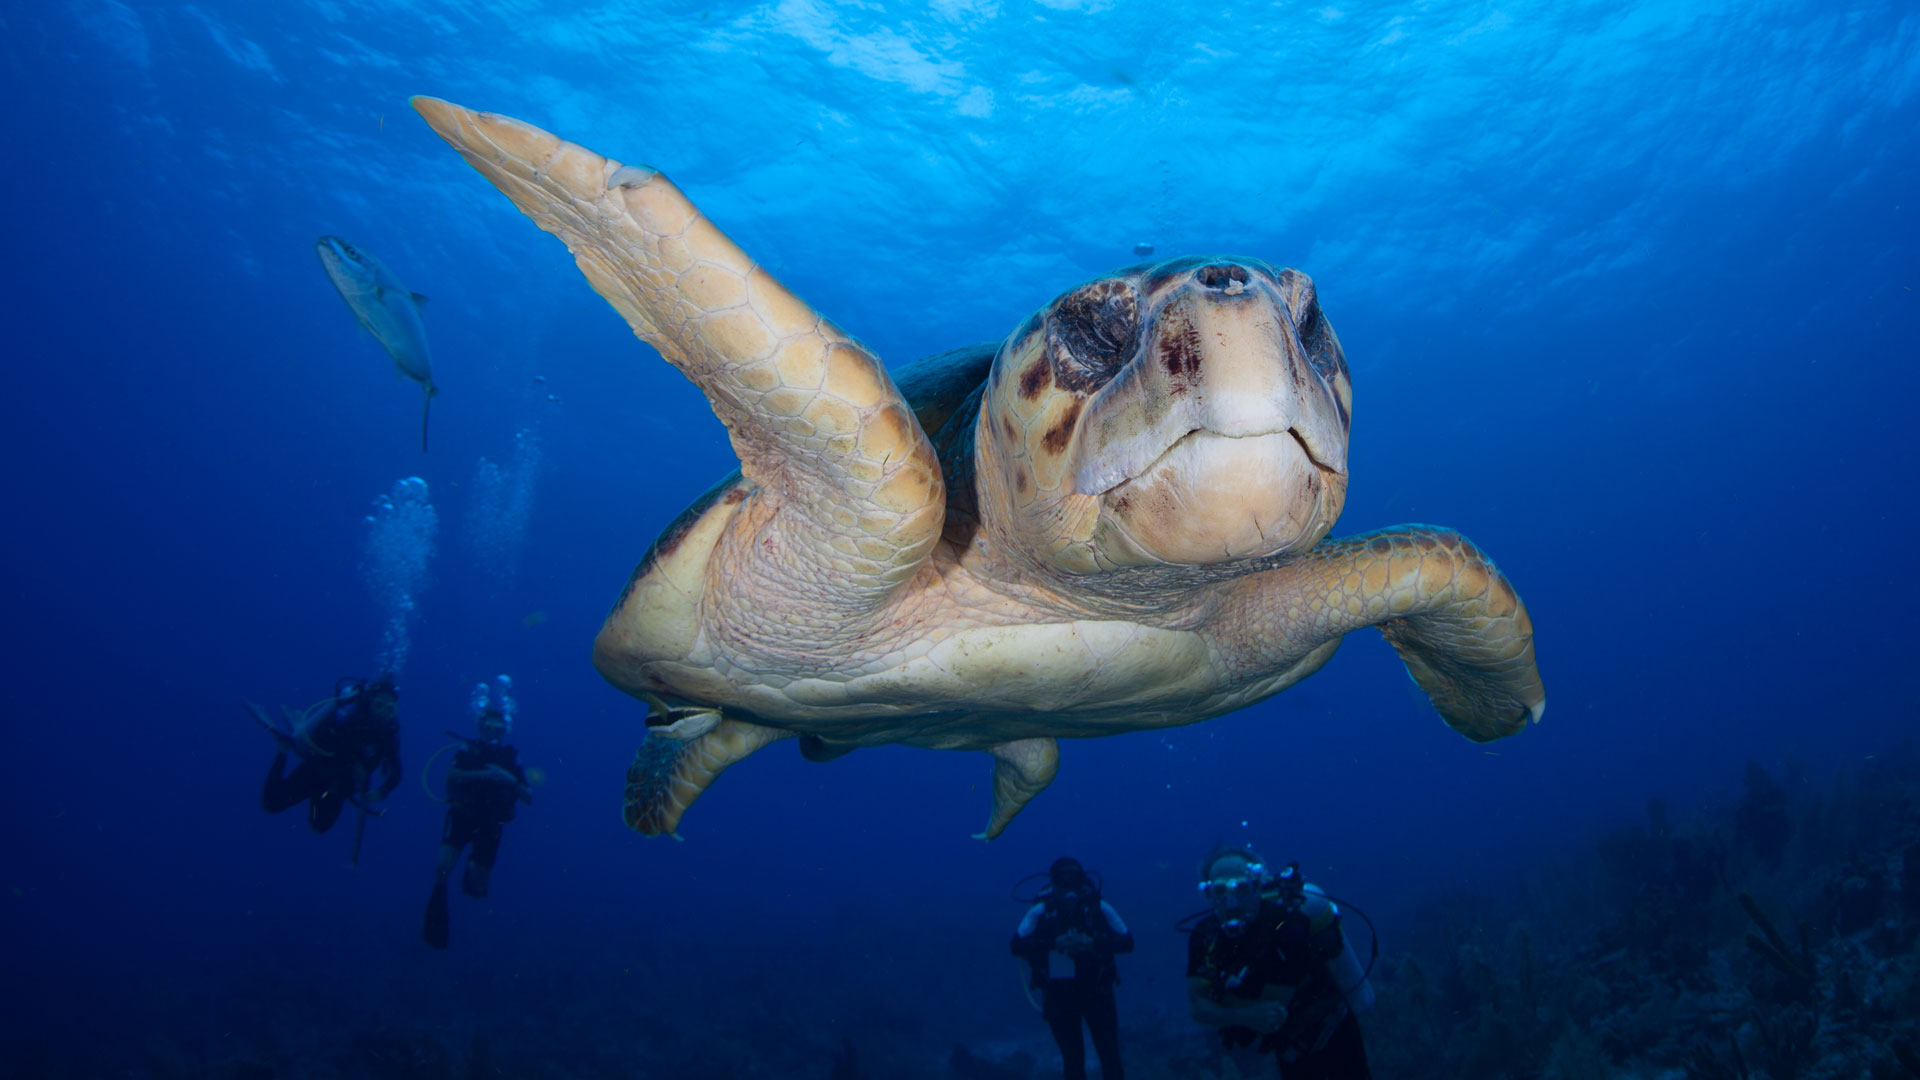 Diving with turtles, Belize